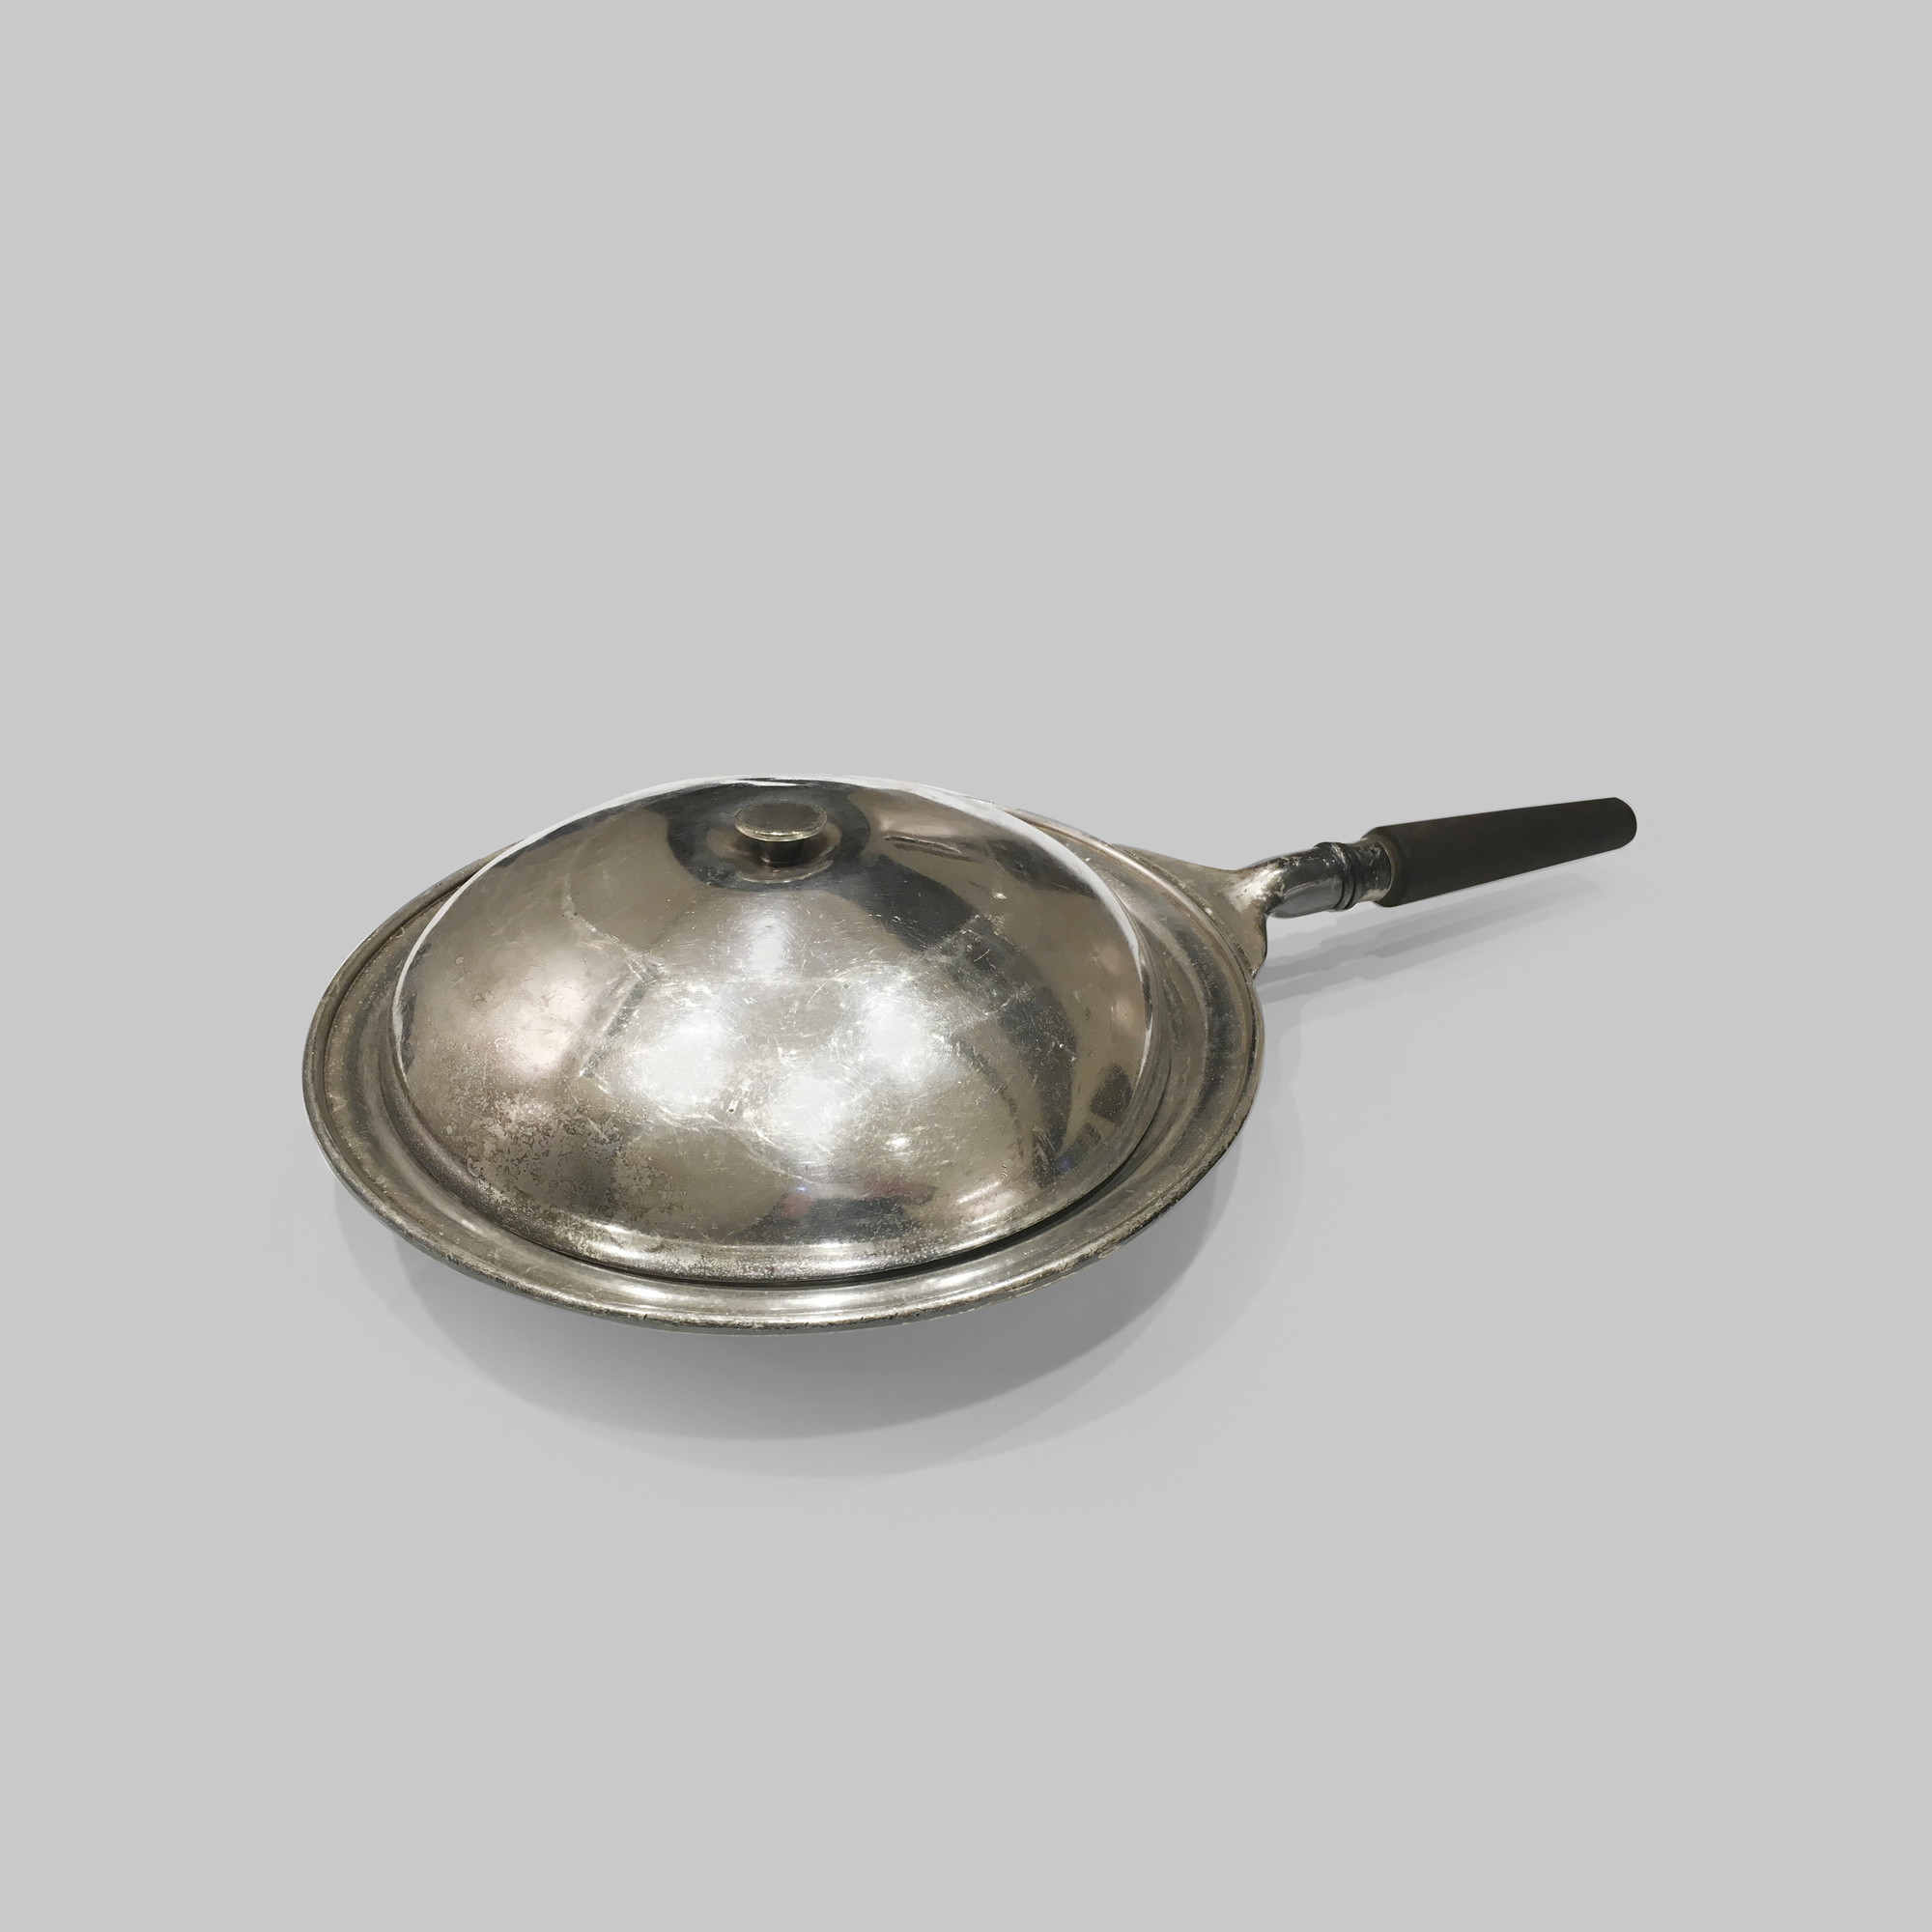 472:  / Lidded serving pan from The Four Seasons (1 of 1)